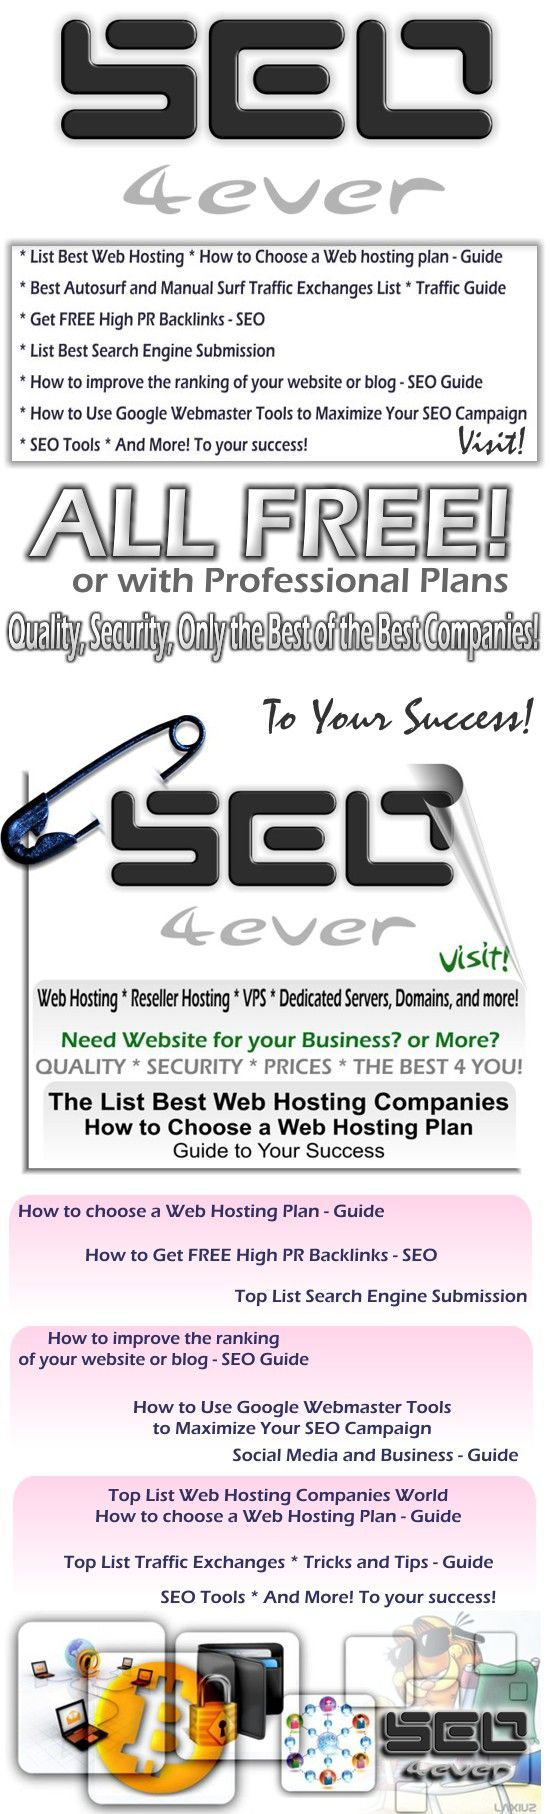 SEO4ever - TOP LIST: Web Hosting Companies * Traffic Exchanges * High PR Backlinks * SEO Tools * SEO Guide * Search Engines Submission * Tips and Tricks - Guide * Social Media - Guide * and more! ALL FREE OR WITH PROFESSIONAL PLANS. * #Traffic Exchange #AutosurfExchange #Traffic #news #webmaster #seo #marketing #SocialMedia #WebHosting #backlinks * Only the best of the best. Quality and Security: SEO4ever. CLICK HERE: http://toplistseo4ever.com/searchenginessubmission.html * Visit!